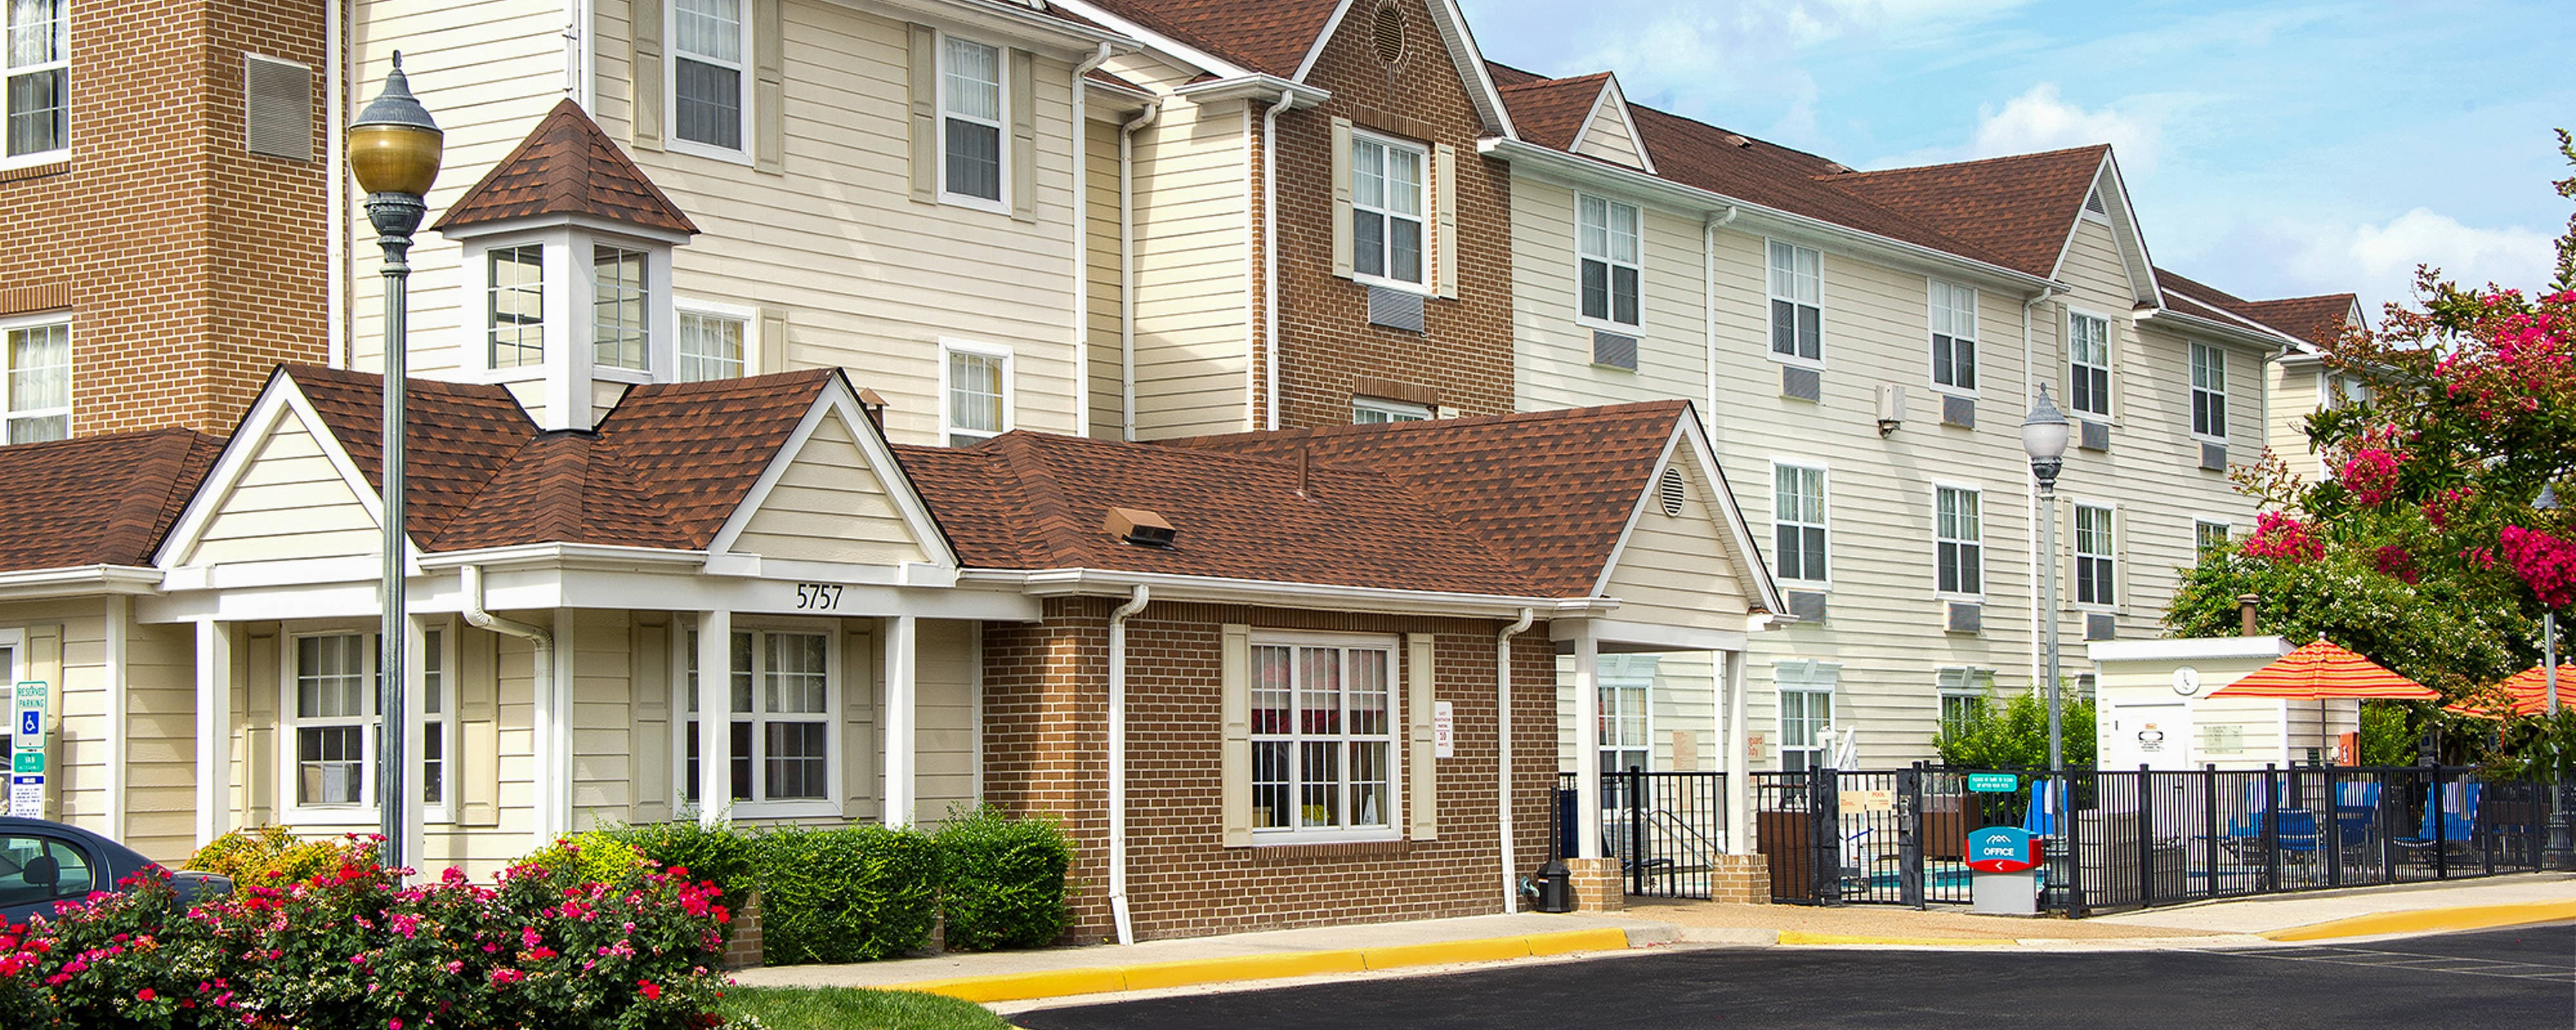 Extended-Stay Virginia Beach Norfolk Hotels | TownePlace Suites